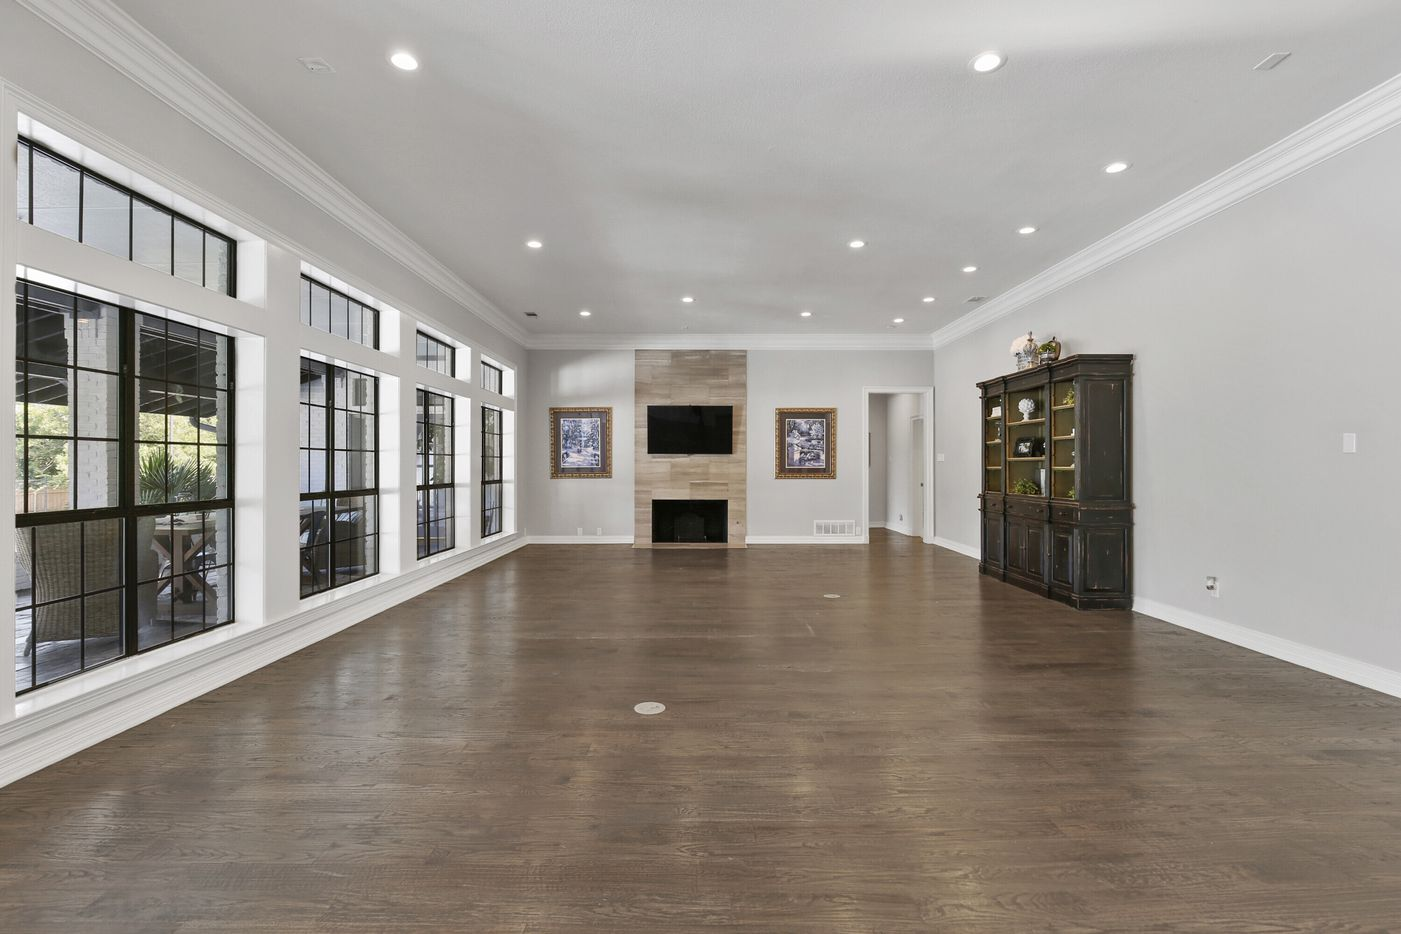 Take a look at the home at 14208 Hughes Lane in Dallas.